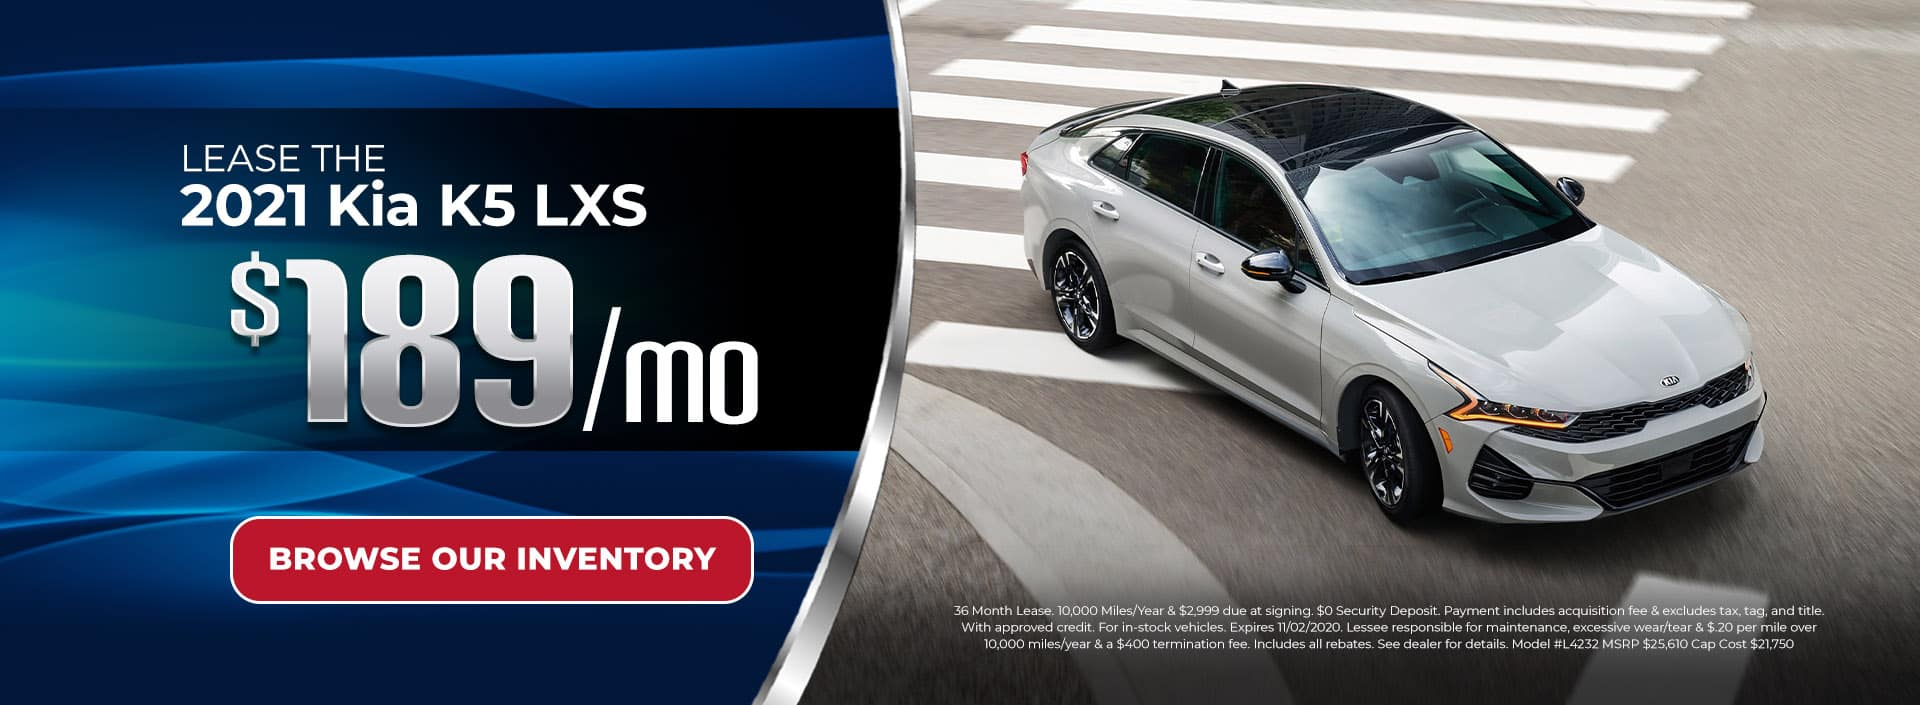 Lease 2021 Kia K5 for $189/mo